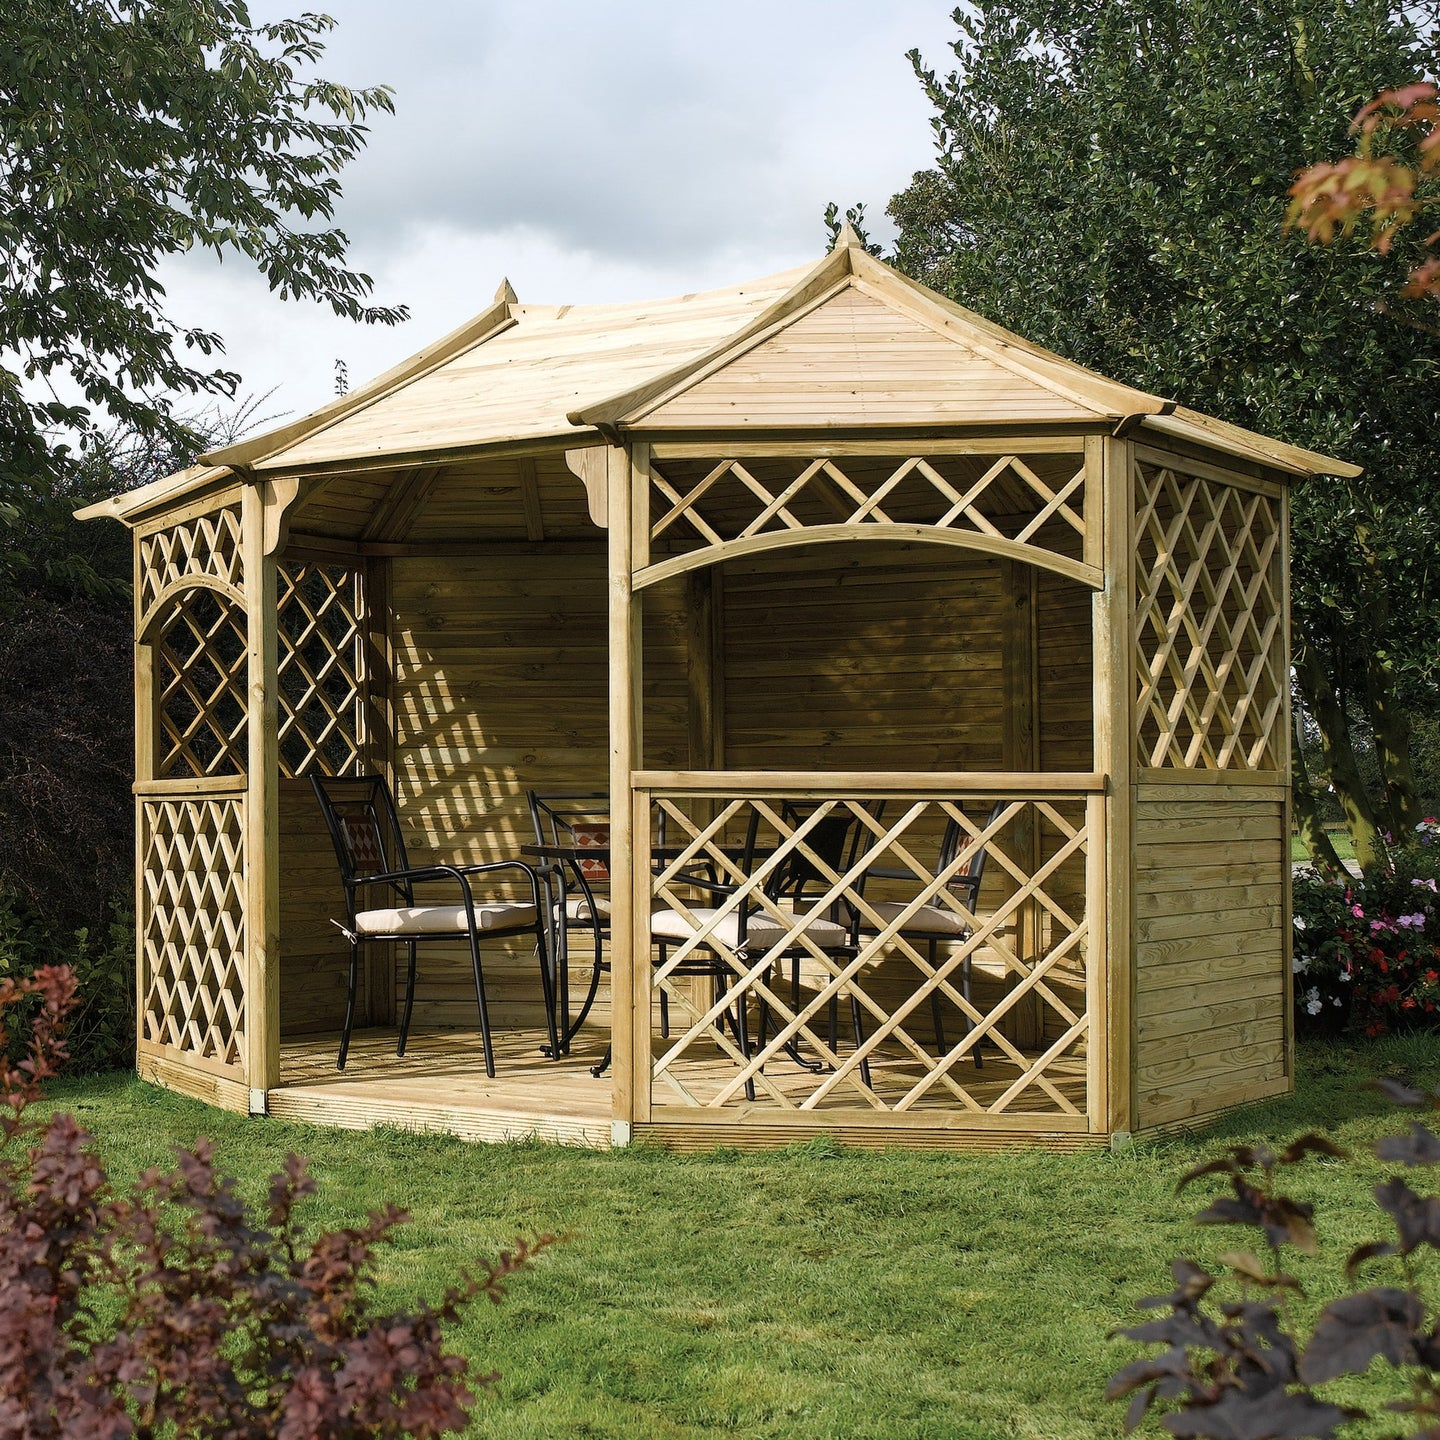 The Ludlow Garden Gazebo